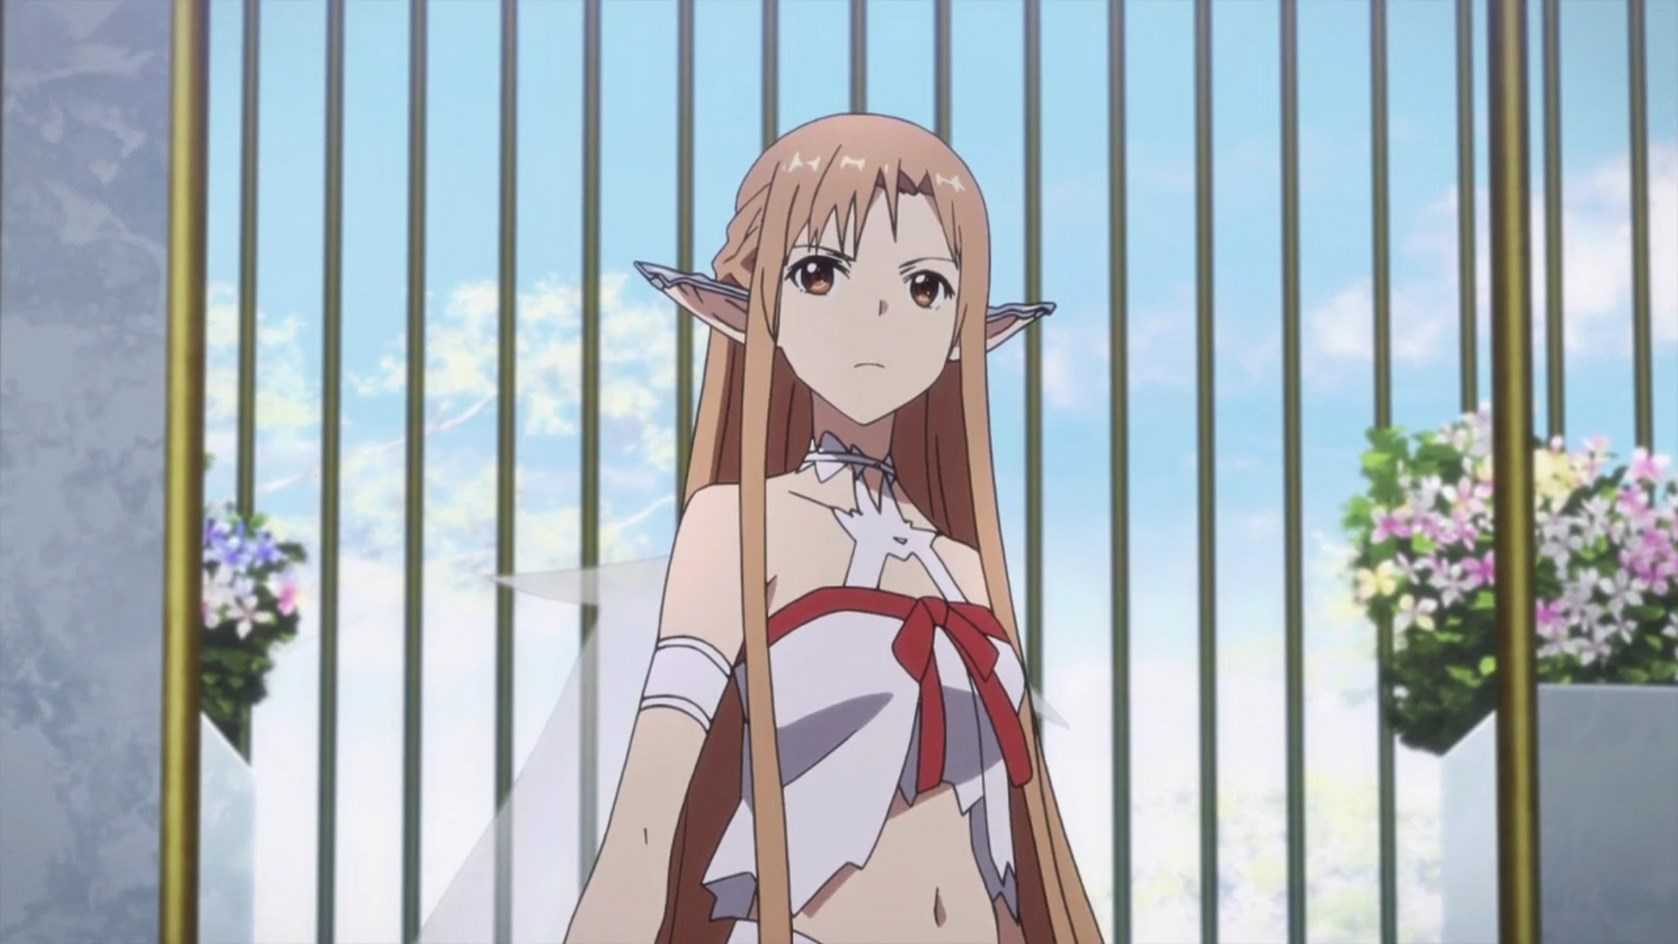 Asuna in Sword Art Online